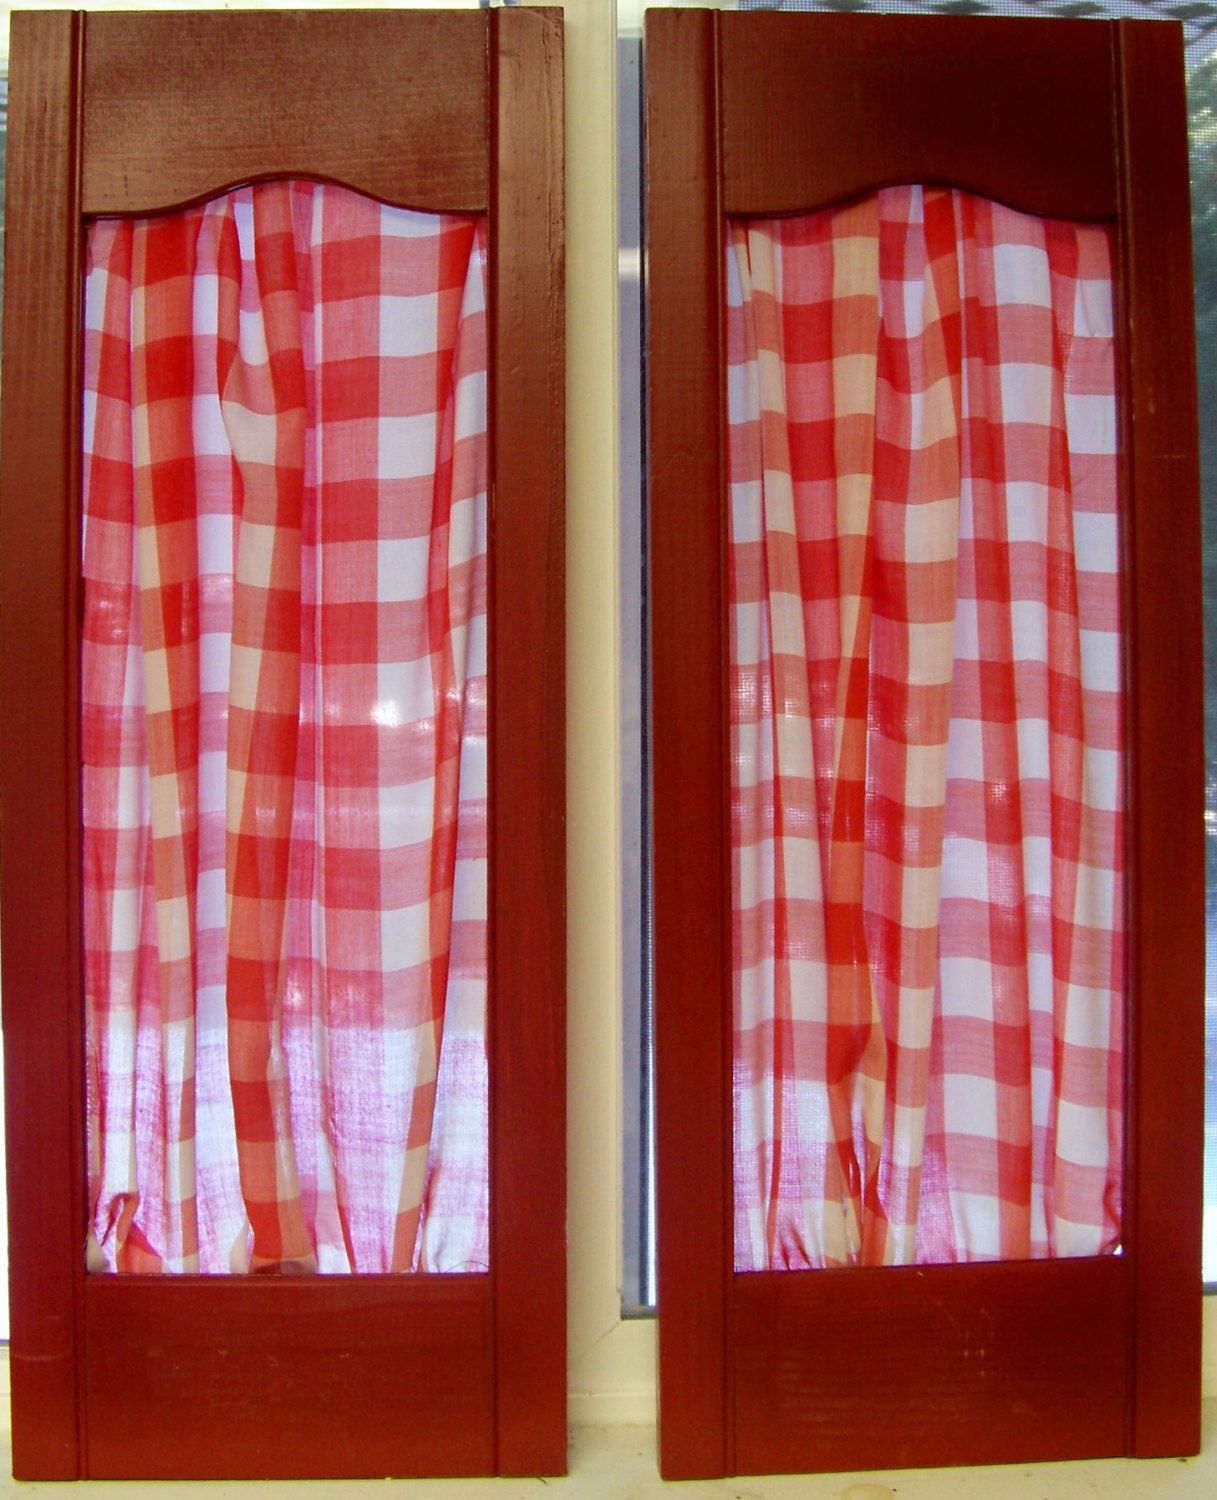 6 Vintage Red Shutter Panels With Red Gingham Fabric